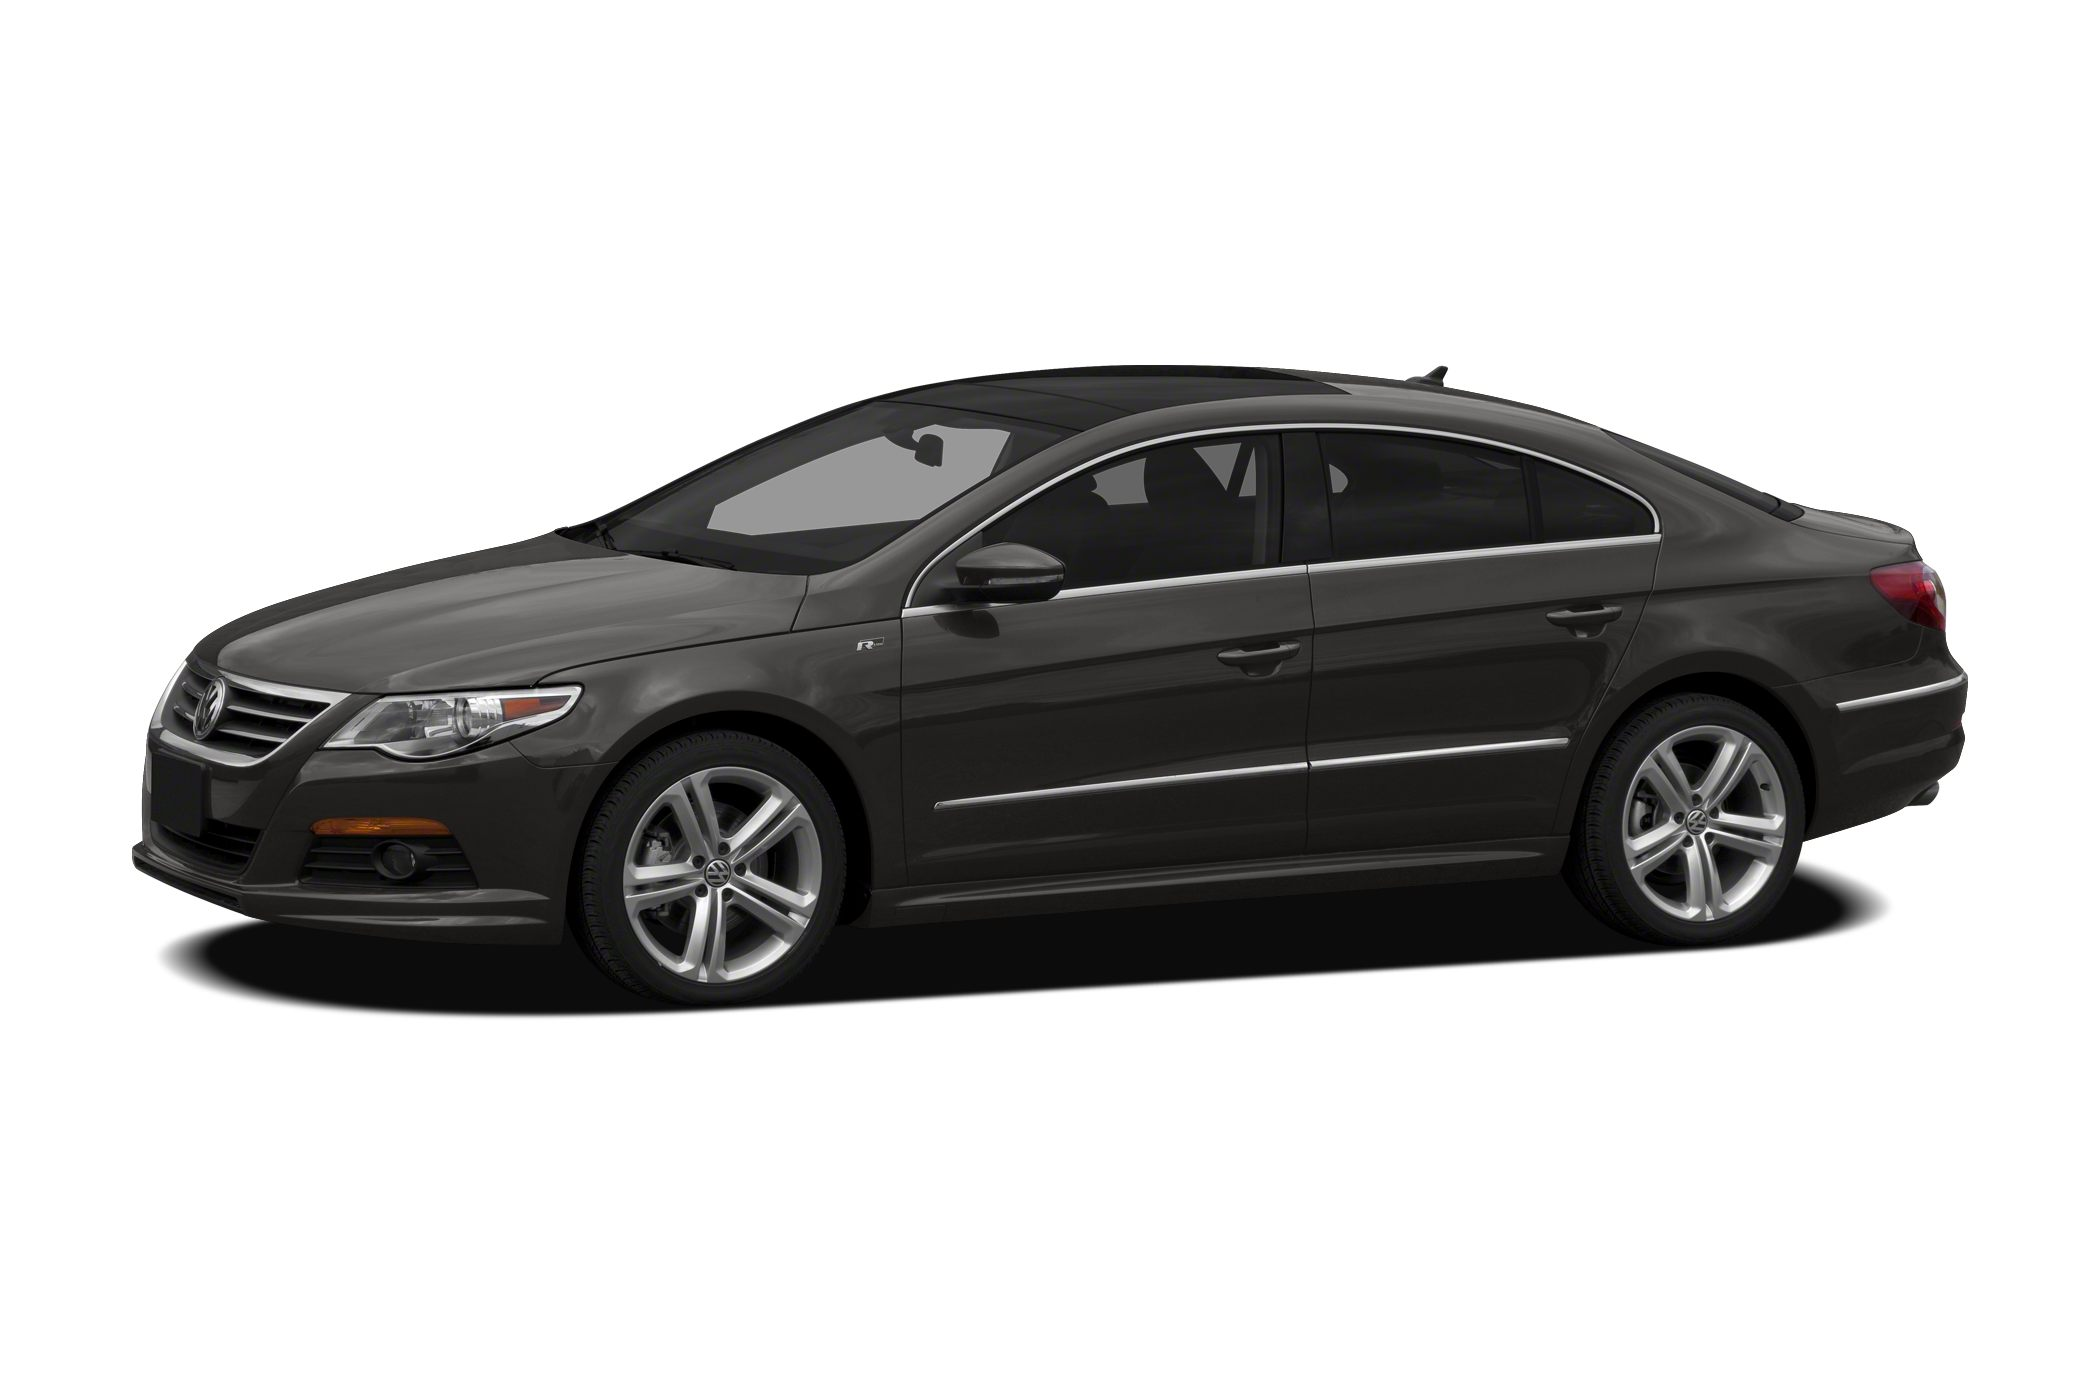 2012 Volkswagen CC R-Line Sedan for sale in Sterling for $19,000 with 32,204 miles.